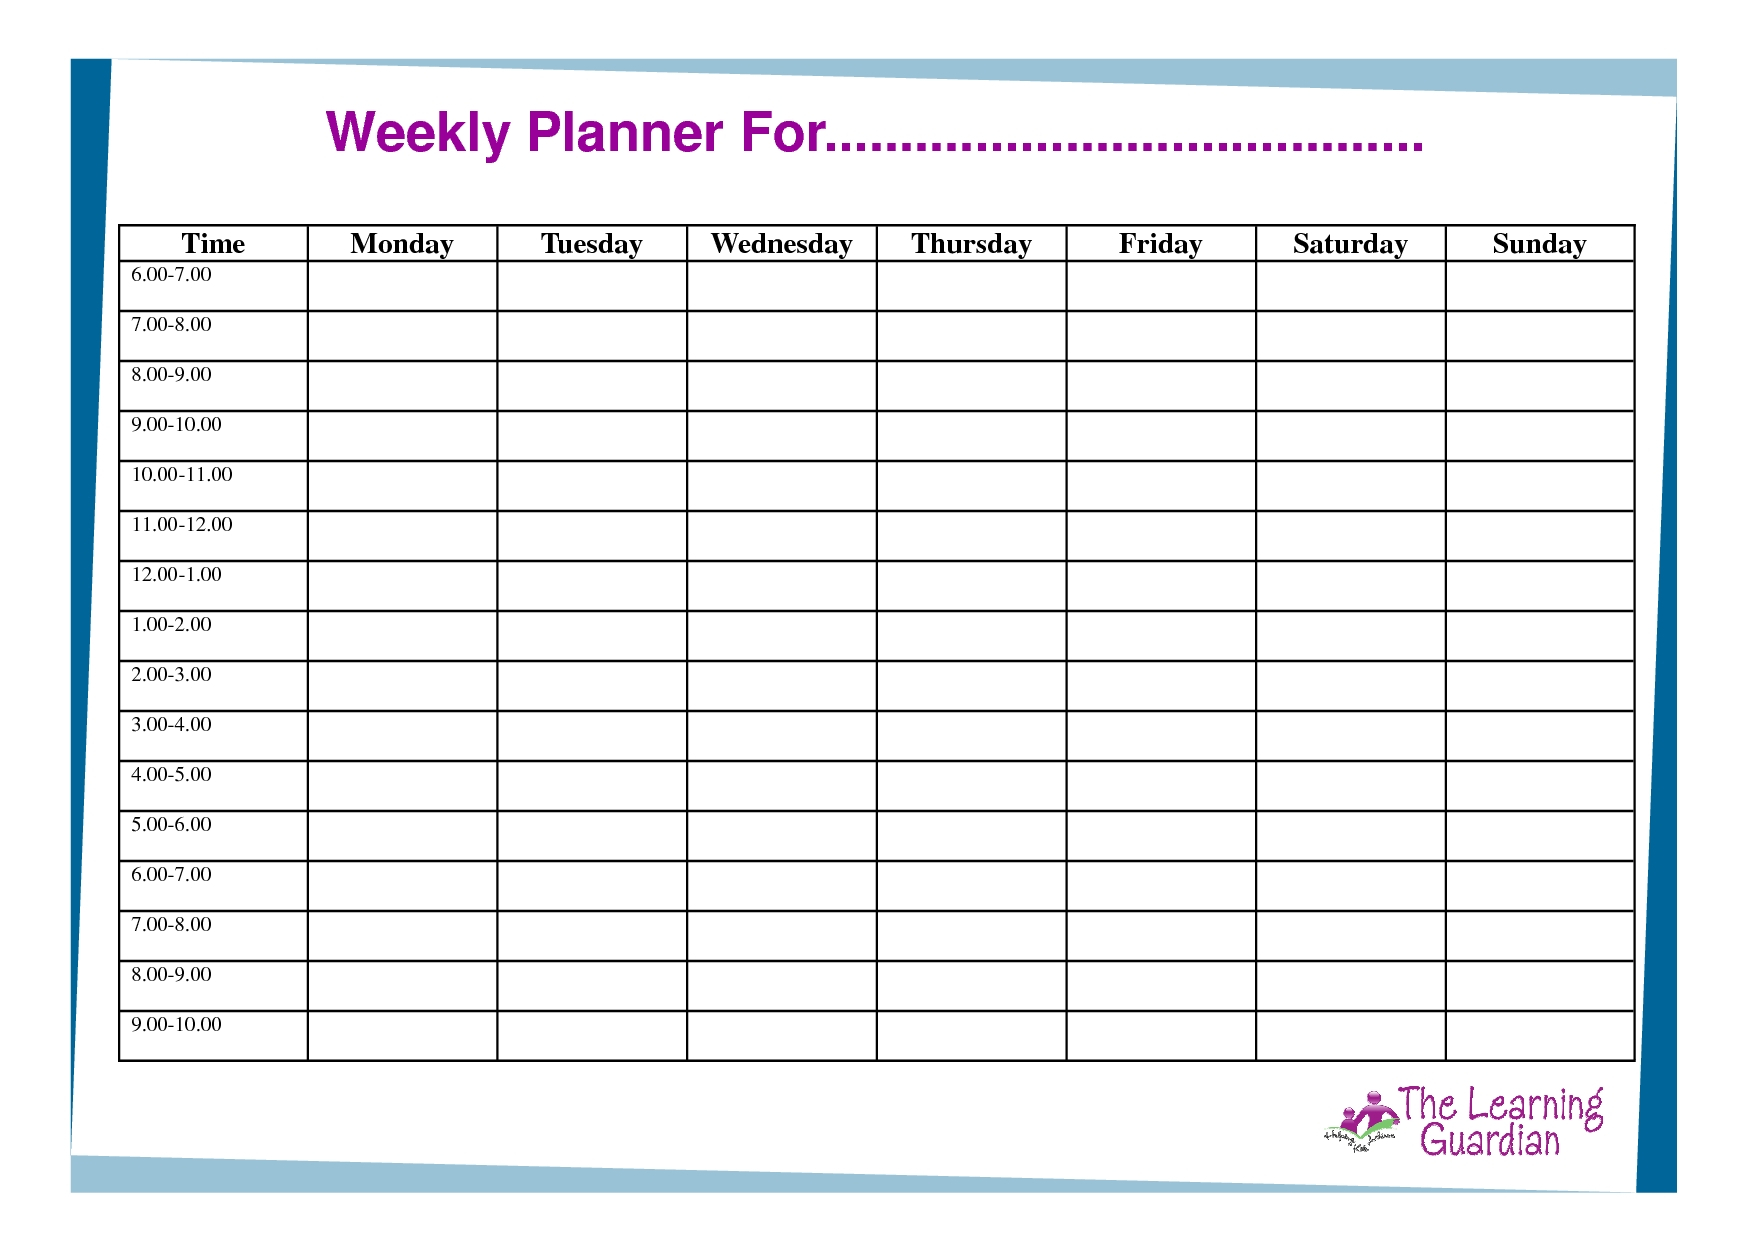 Weekly Schedule Template Monday To Friday | Template Calendar Printable in Monday Through Friday Schedule Template